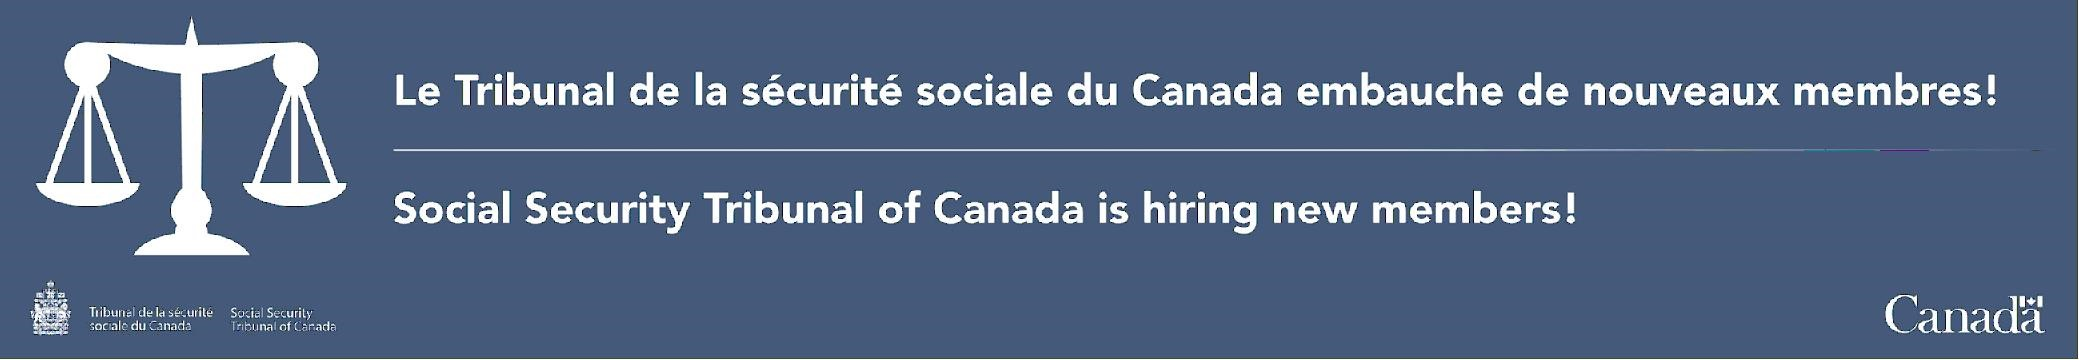 Seeking applications for Positions with the Social Security Tribunal of Canada